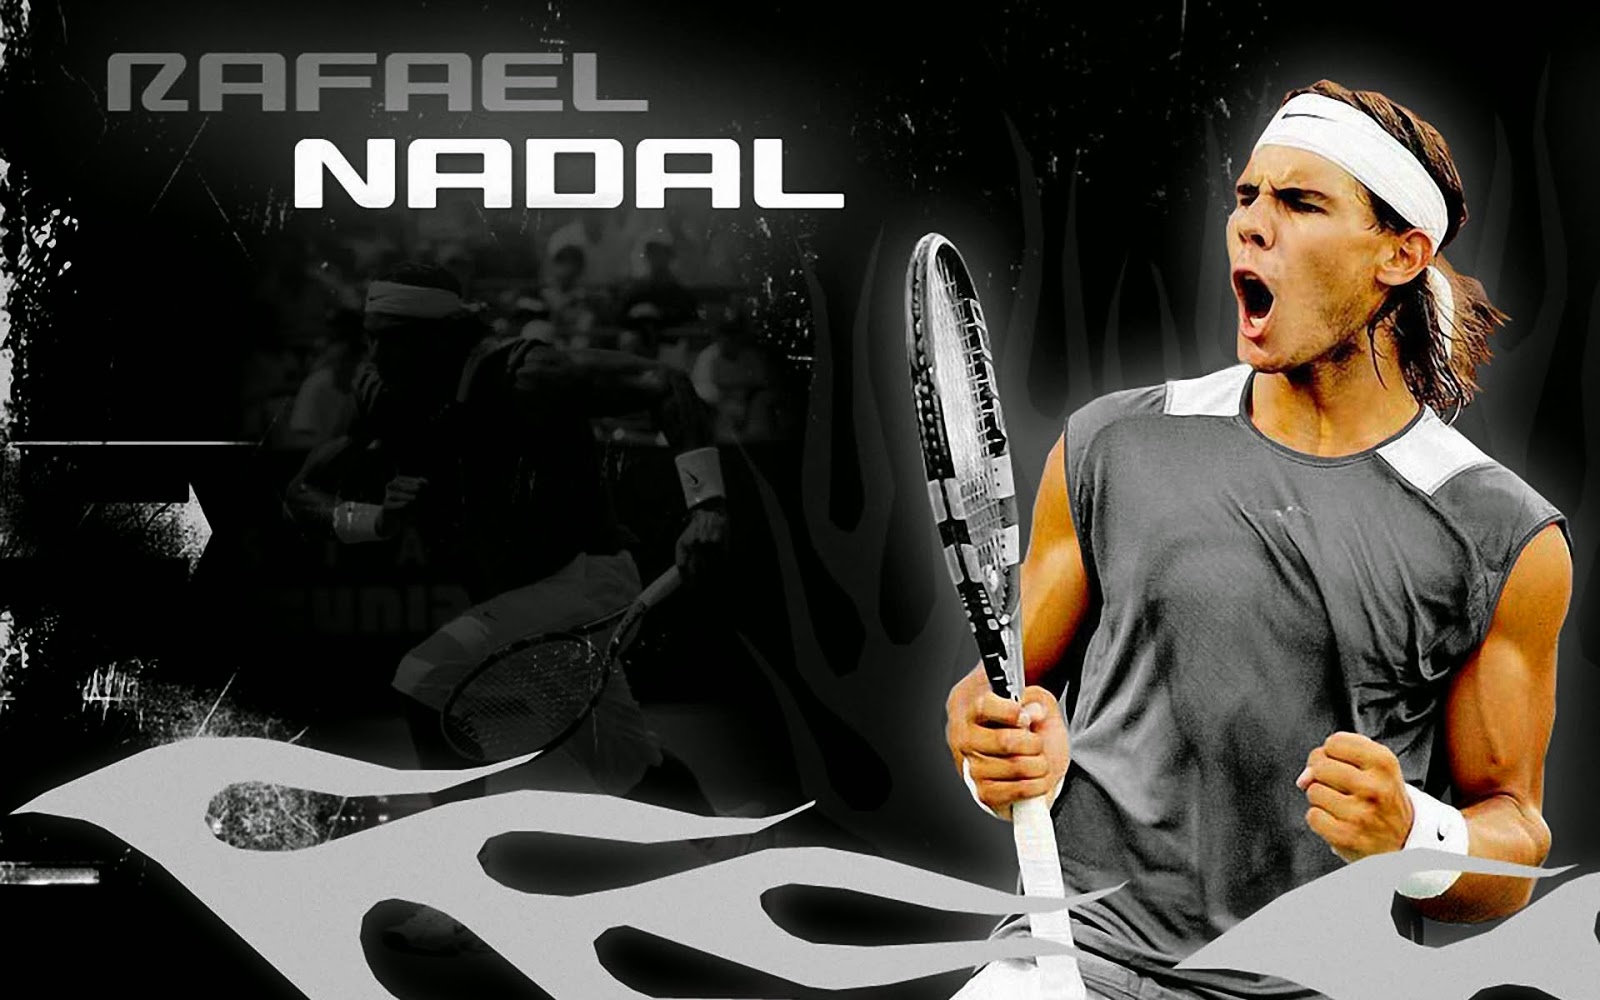 famous tennis players in the world.: it is about rafael nadal hd